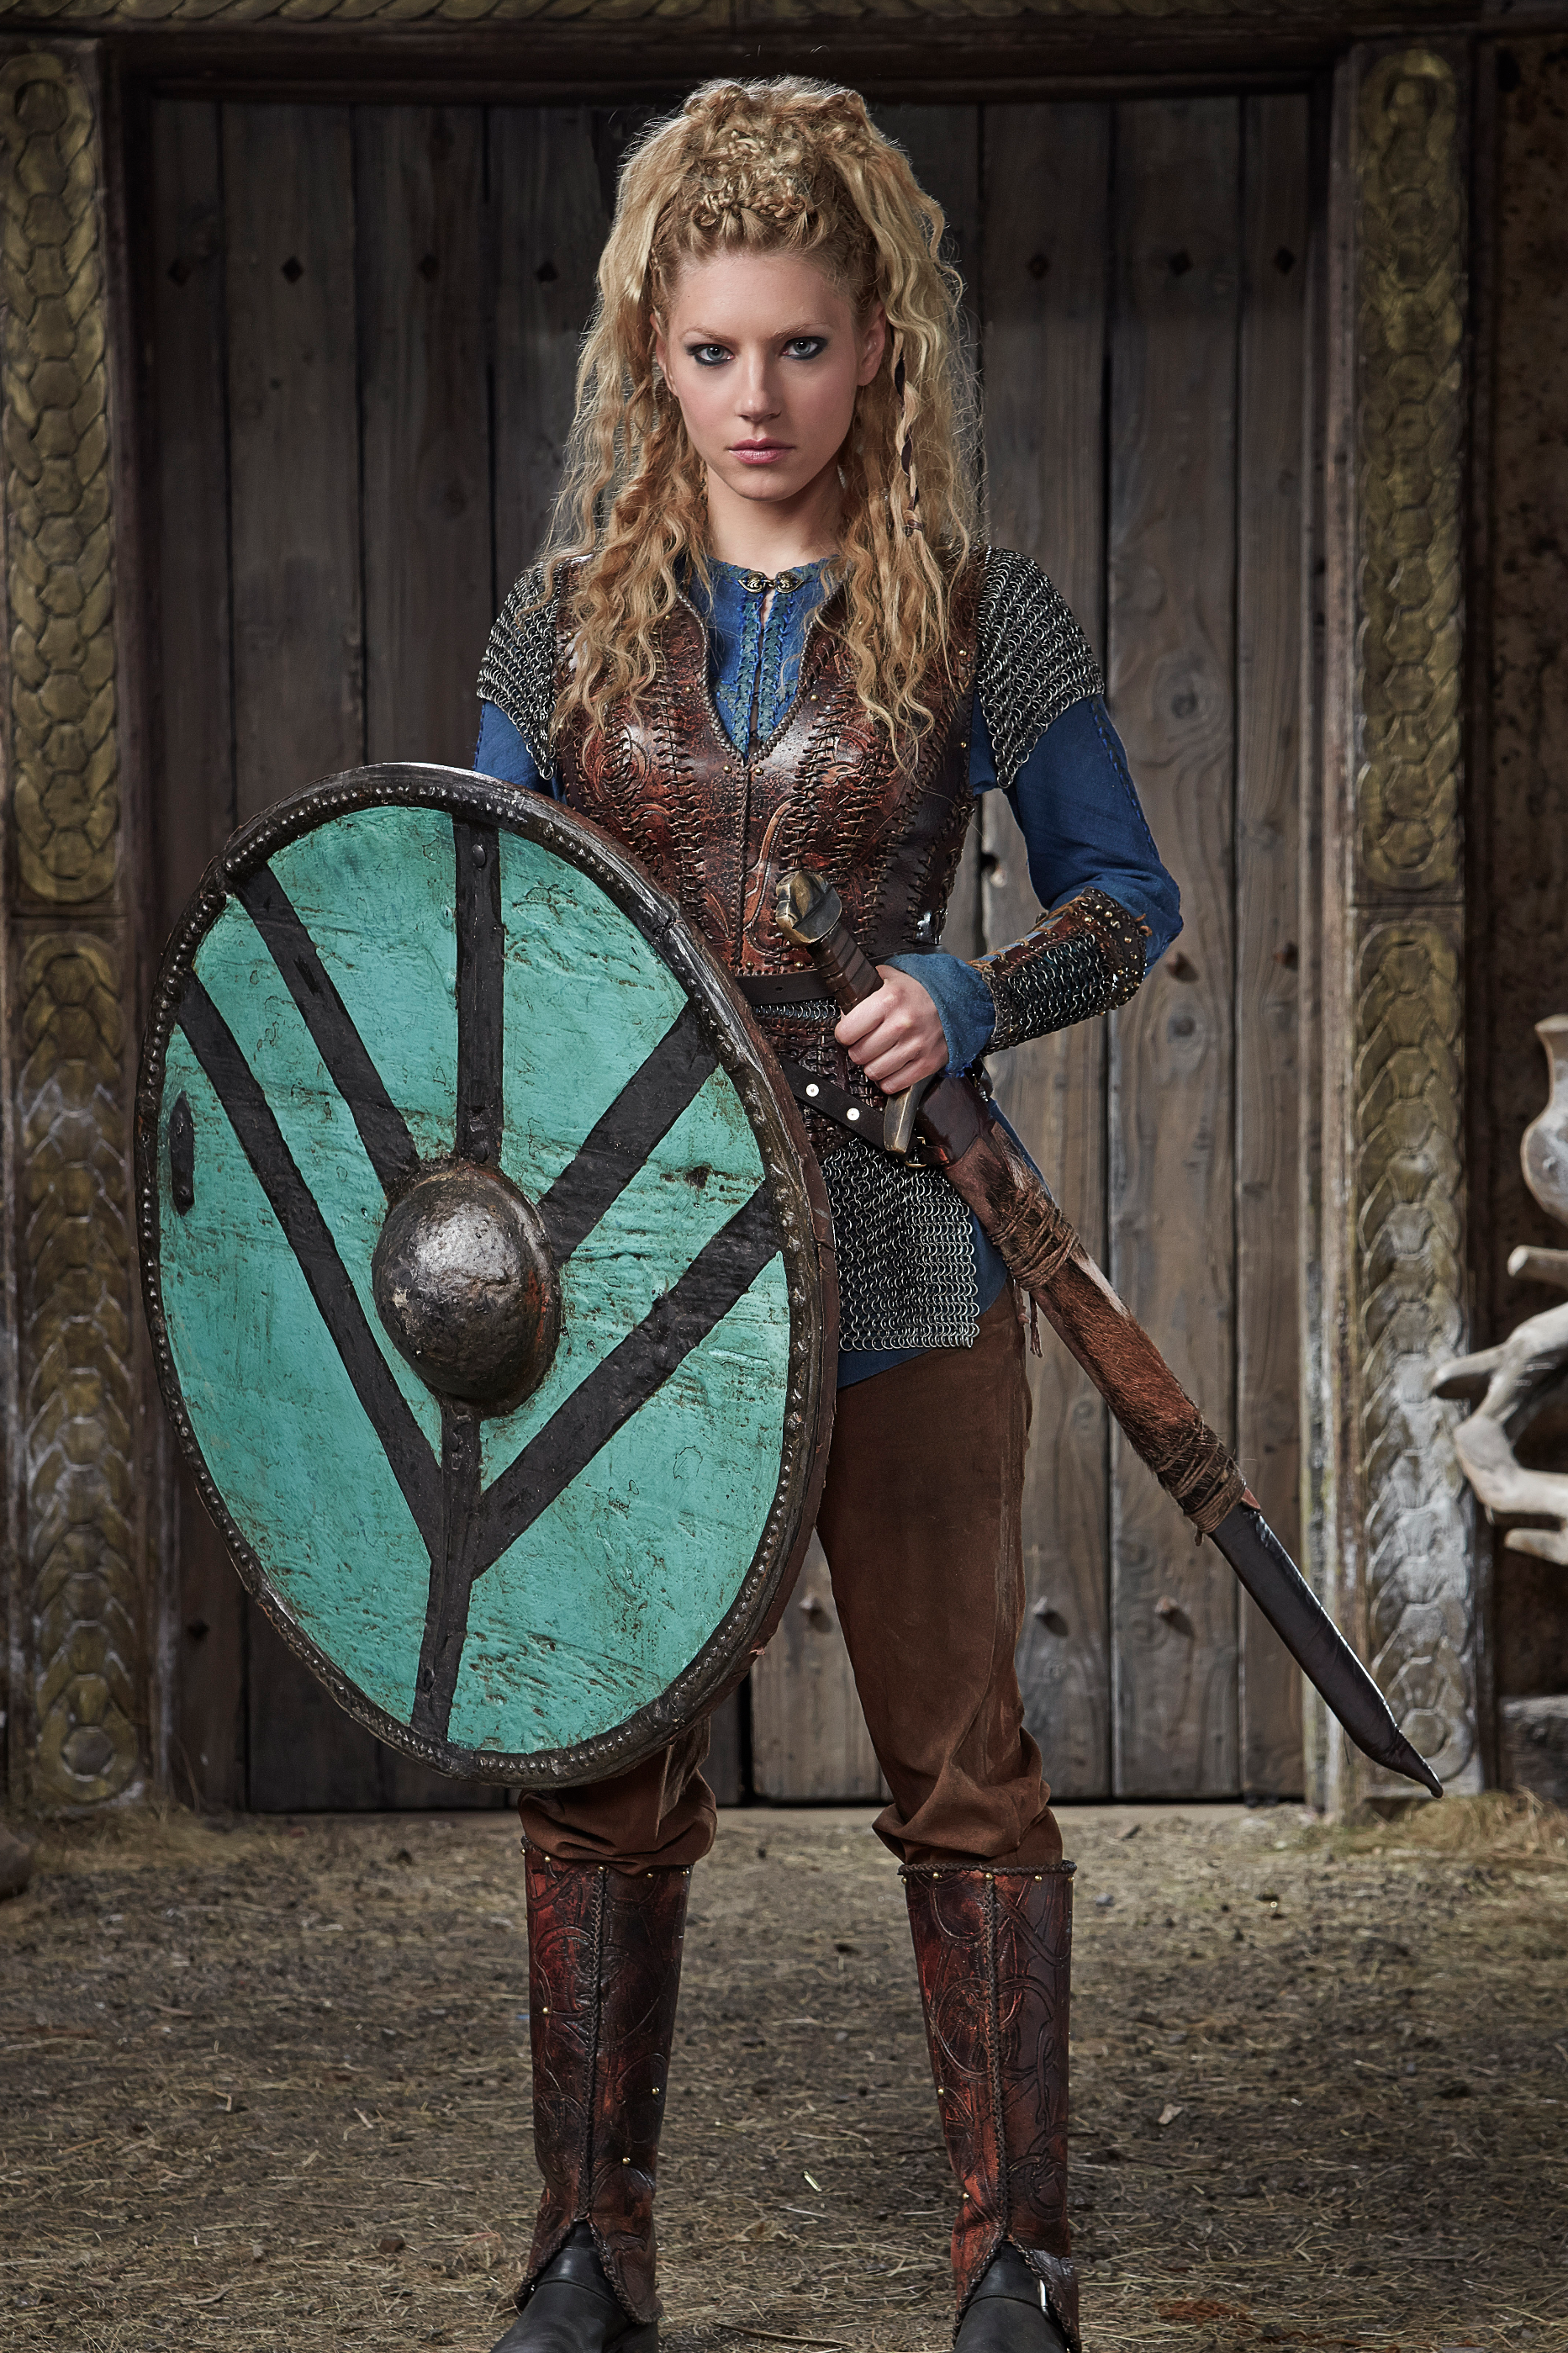 1000+ images about Vikings on Pinterest | Odin's spear ...  |Vikings History Channel